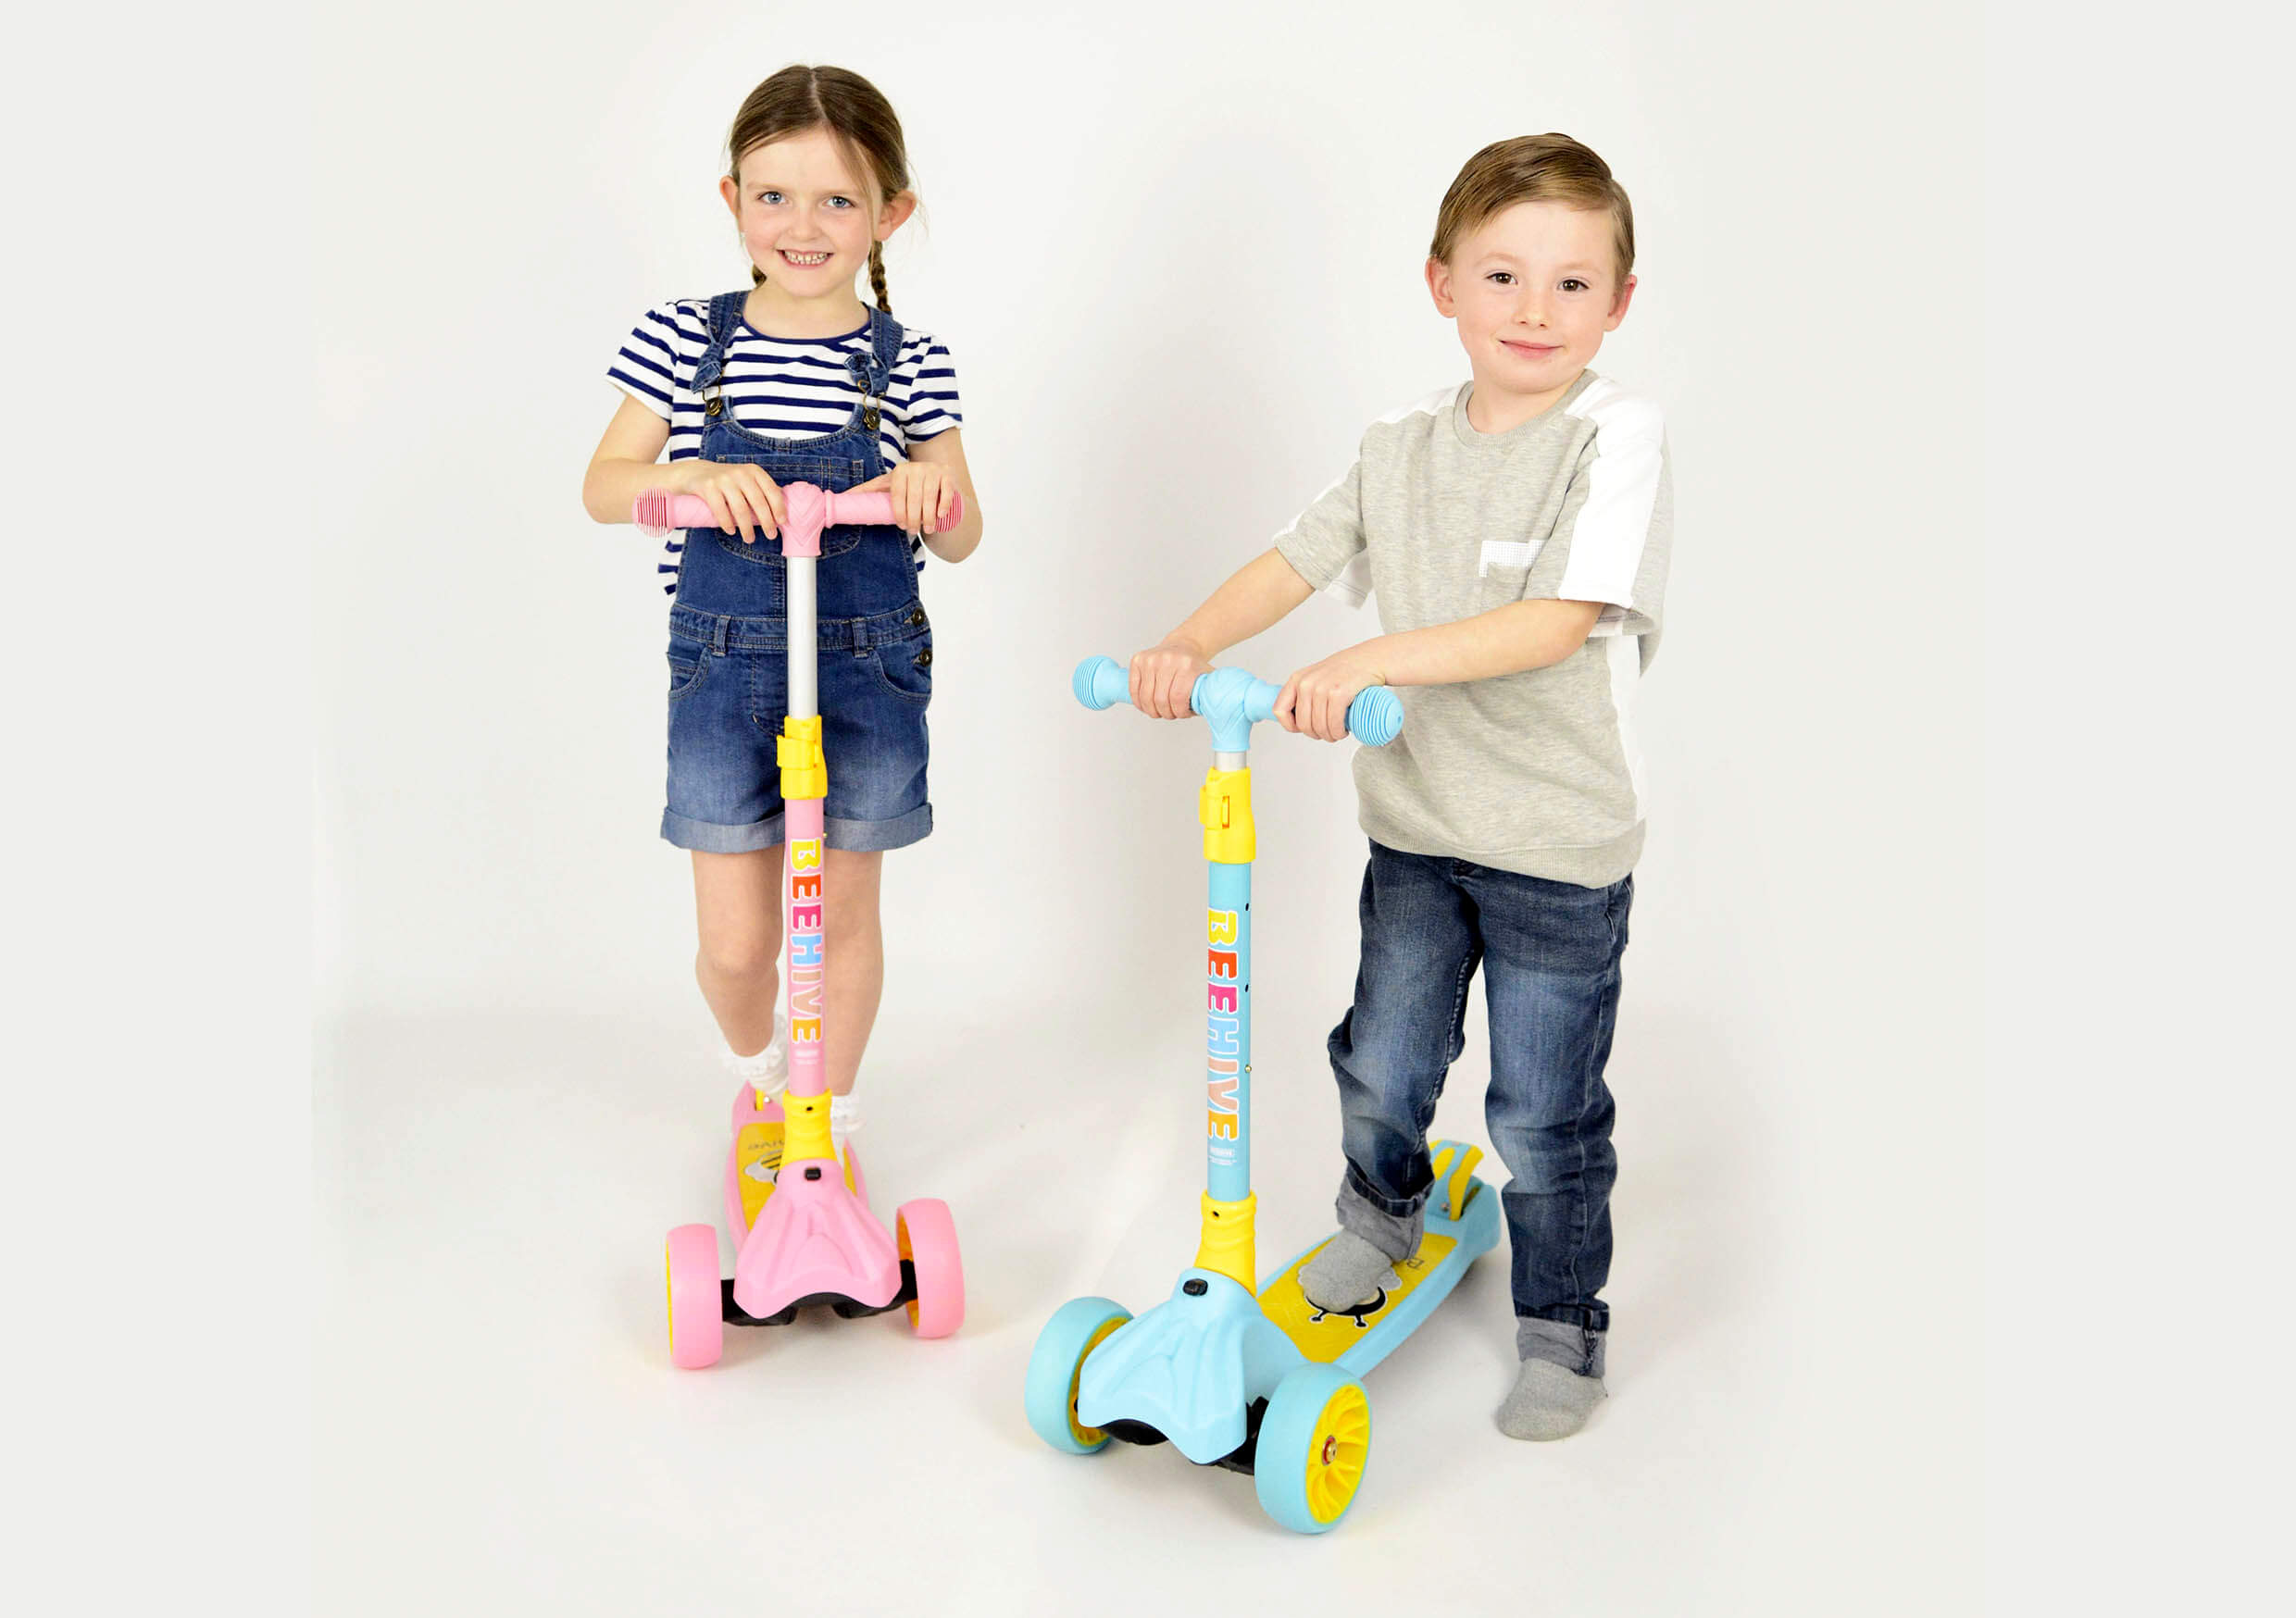 Beehive Toys Folding Scooters for 3 to 6 year olds